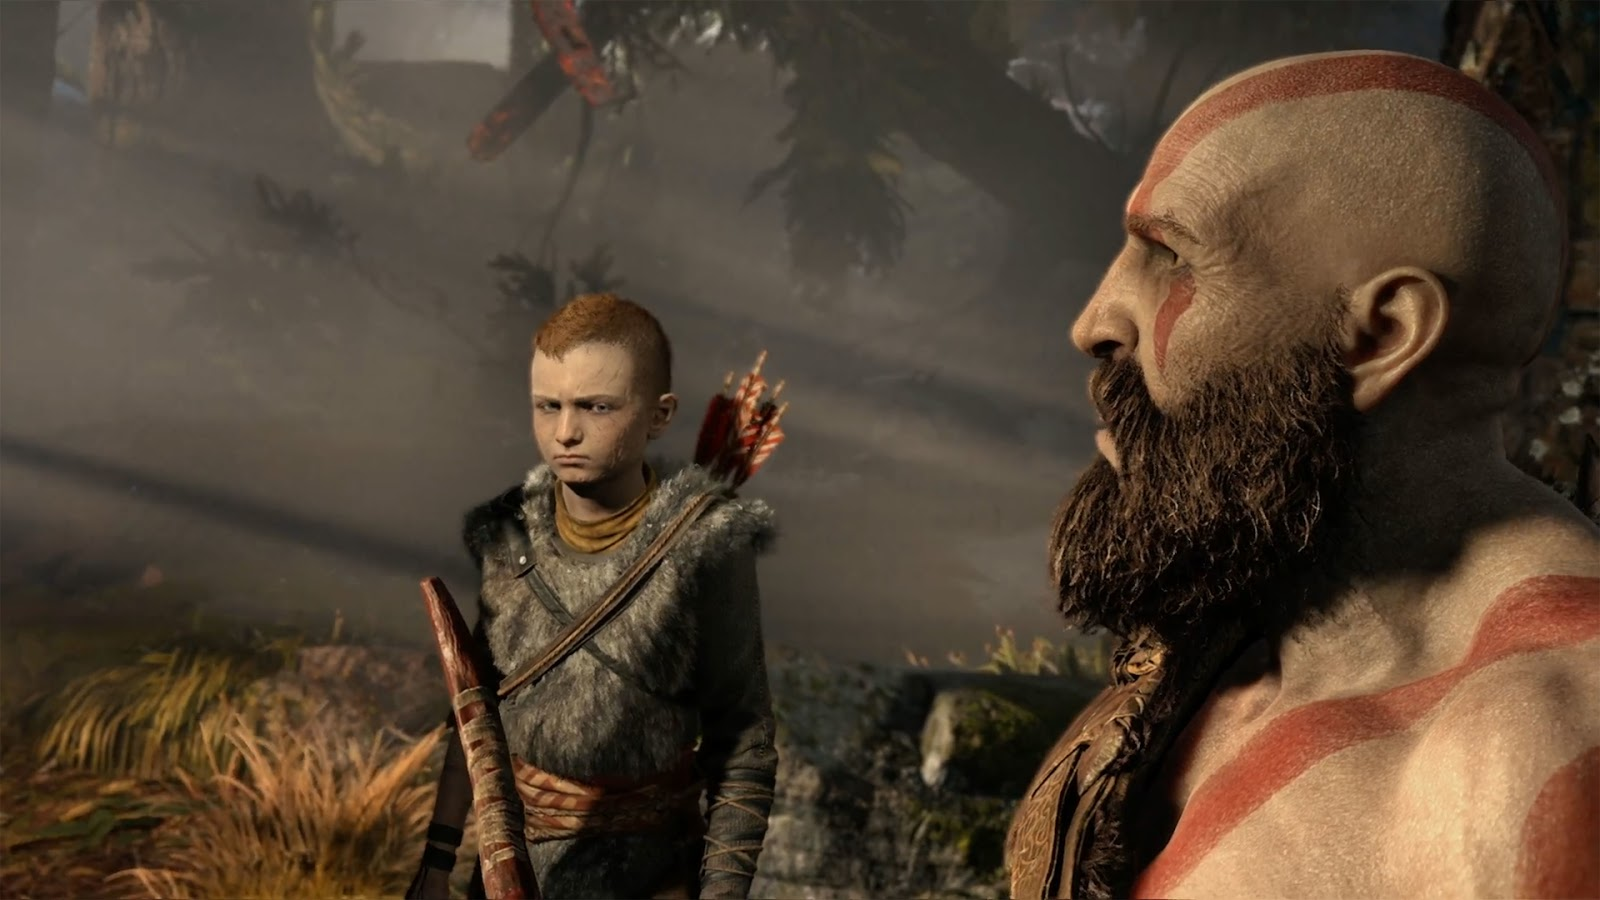 God Of War Iv Hd Wallpapers Read Games Review Play Online Games